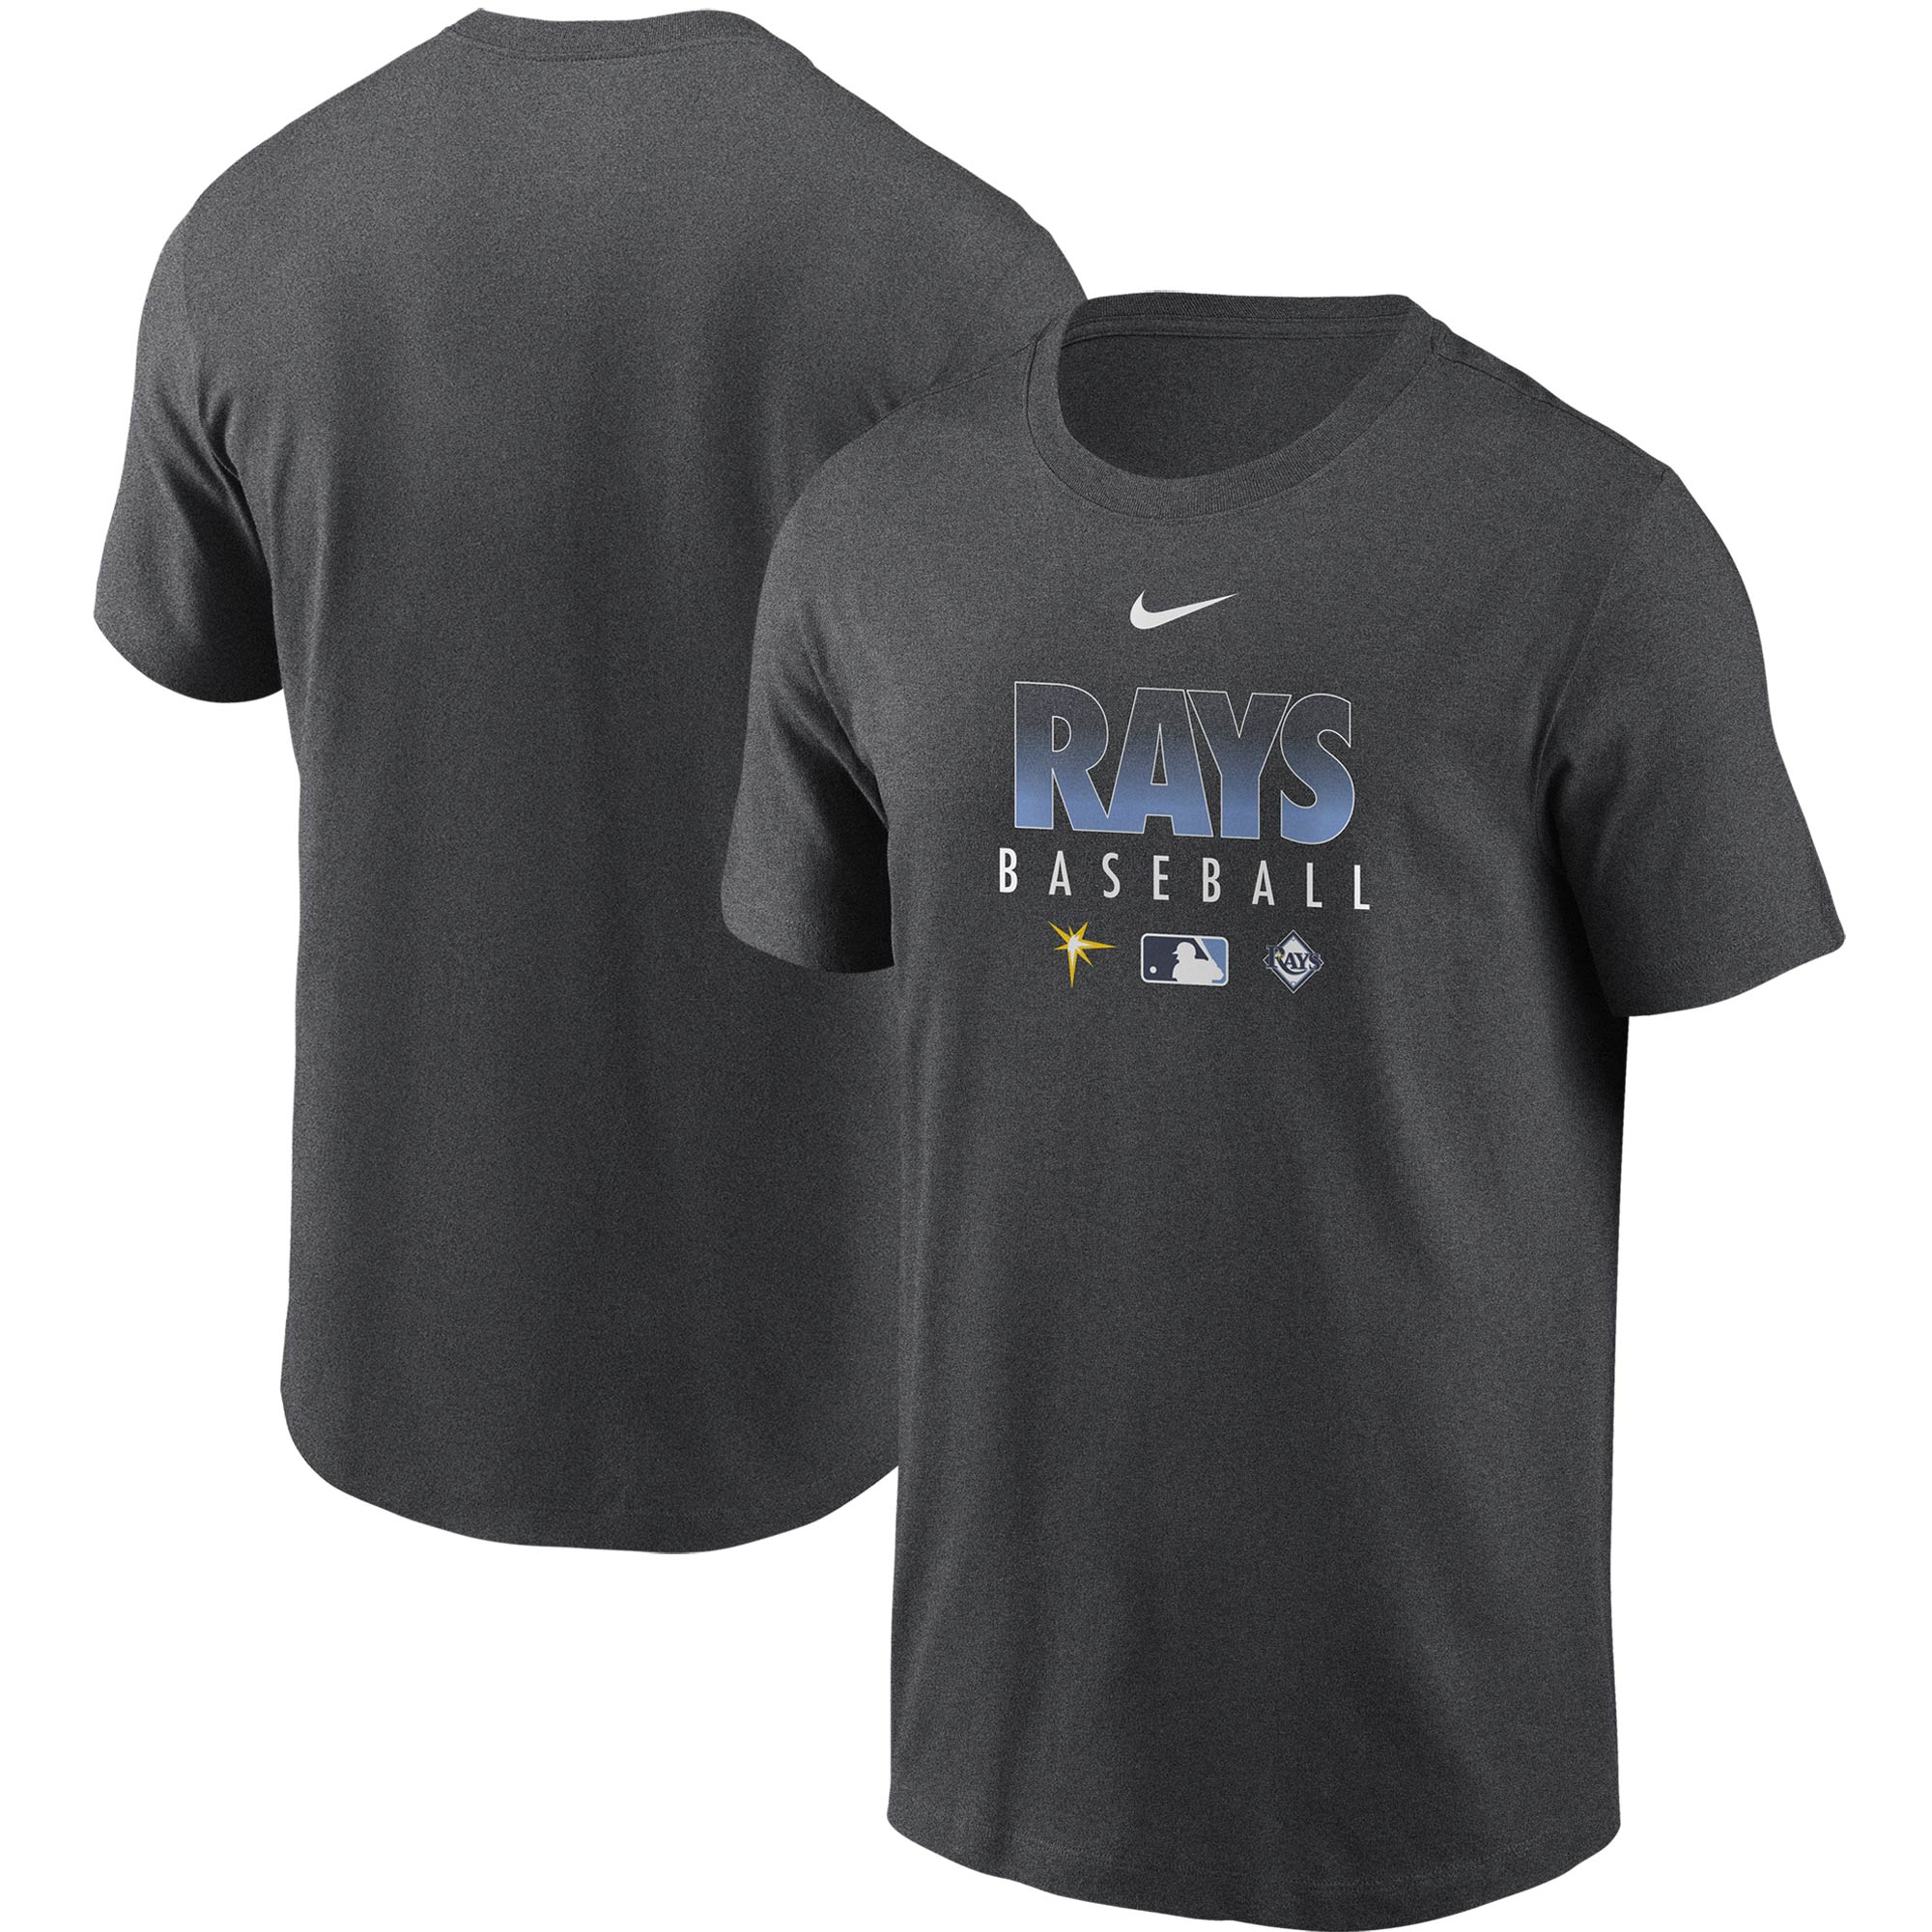 Tampa Bay Rays Nike Authentic Collection Team Performance T-Shirt - Gray